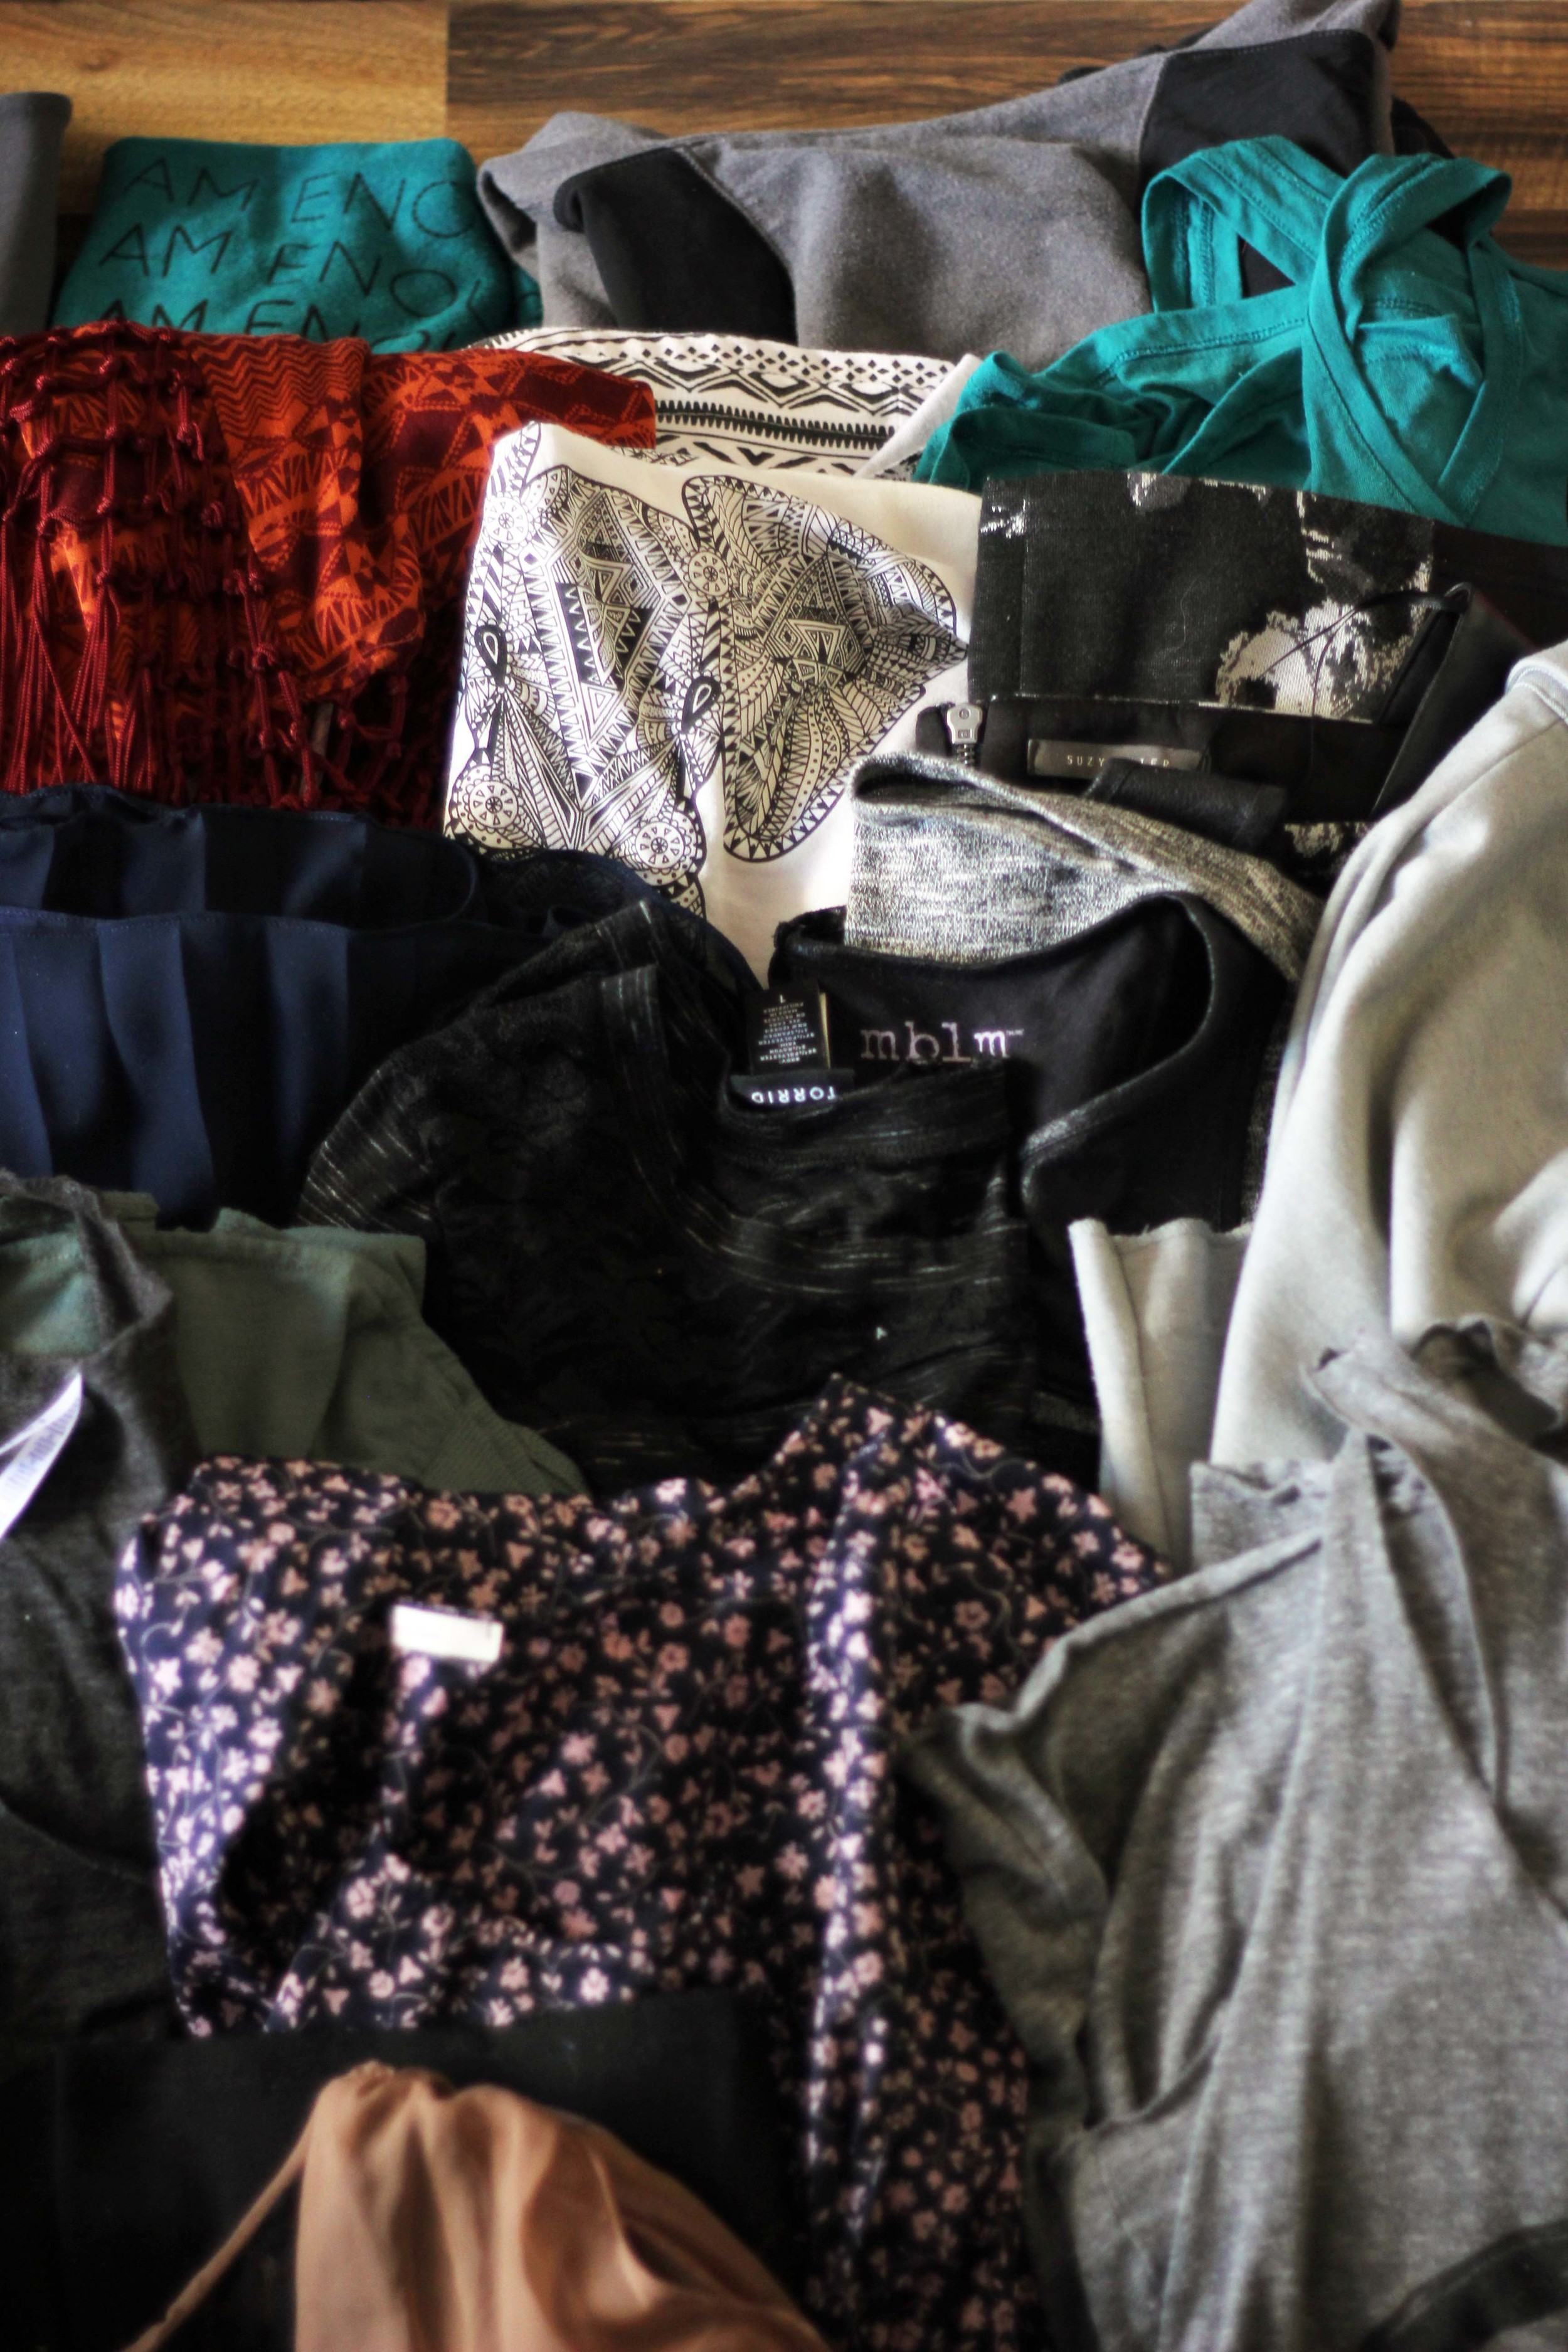 sorting my clothing to live a minimalist style